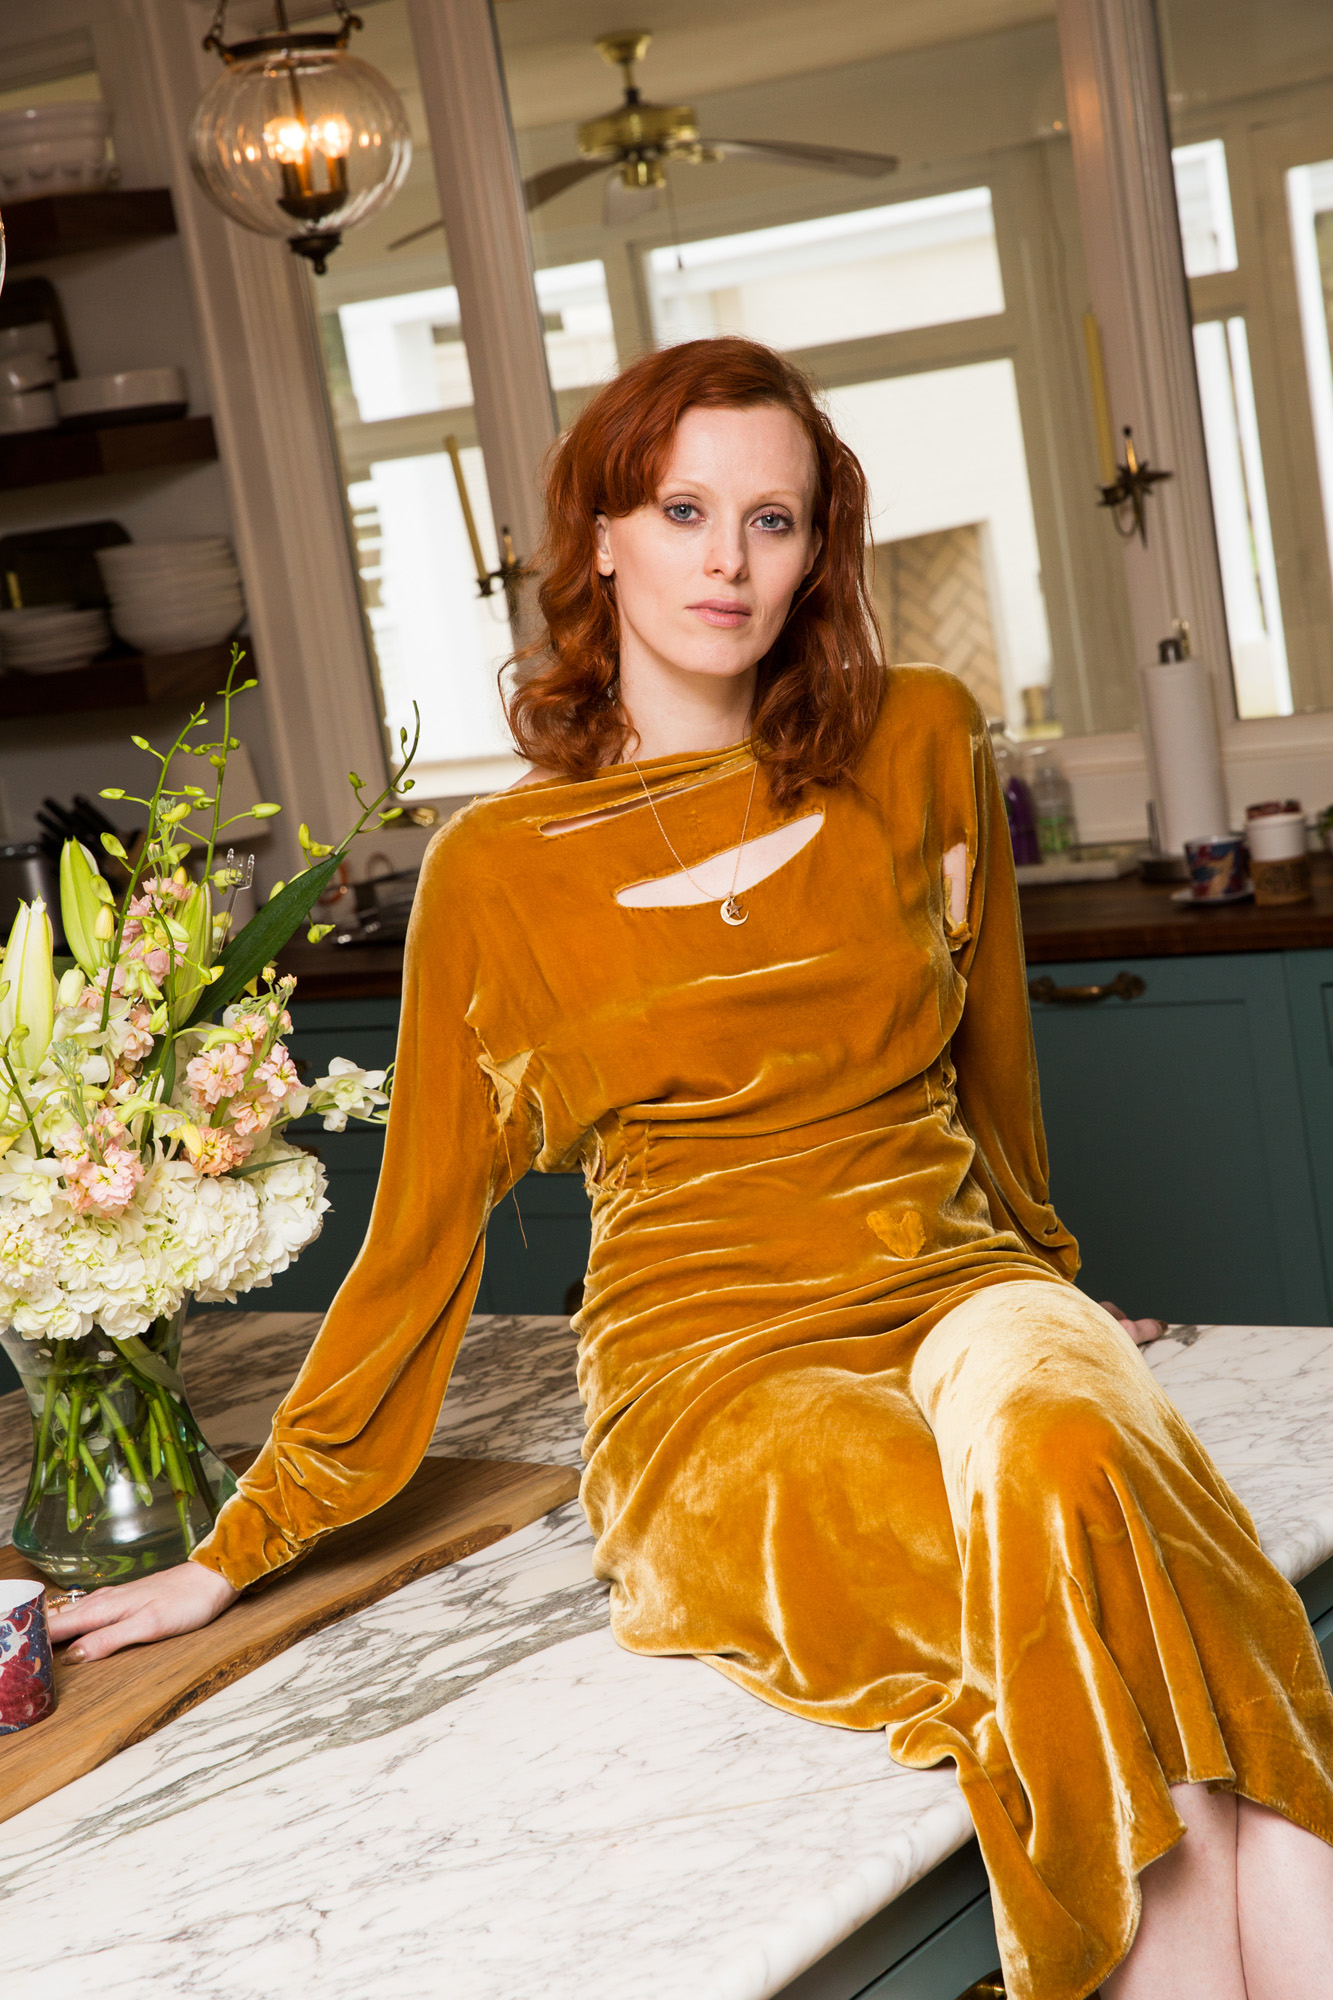 Pictures Karen Elson nudes (71 photo), Ass, Hot, Twitter, in bikini 2017